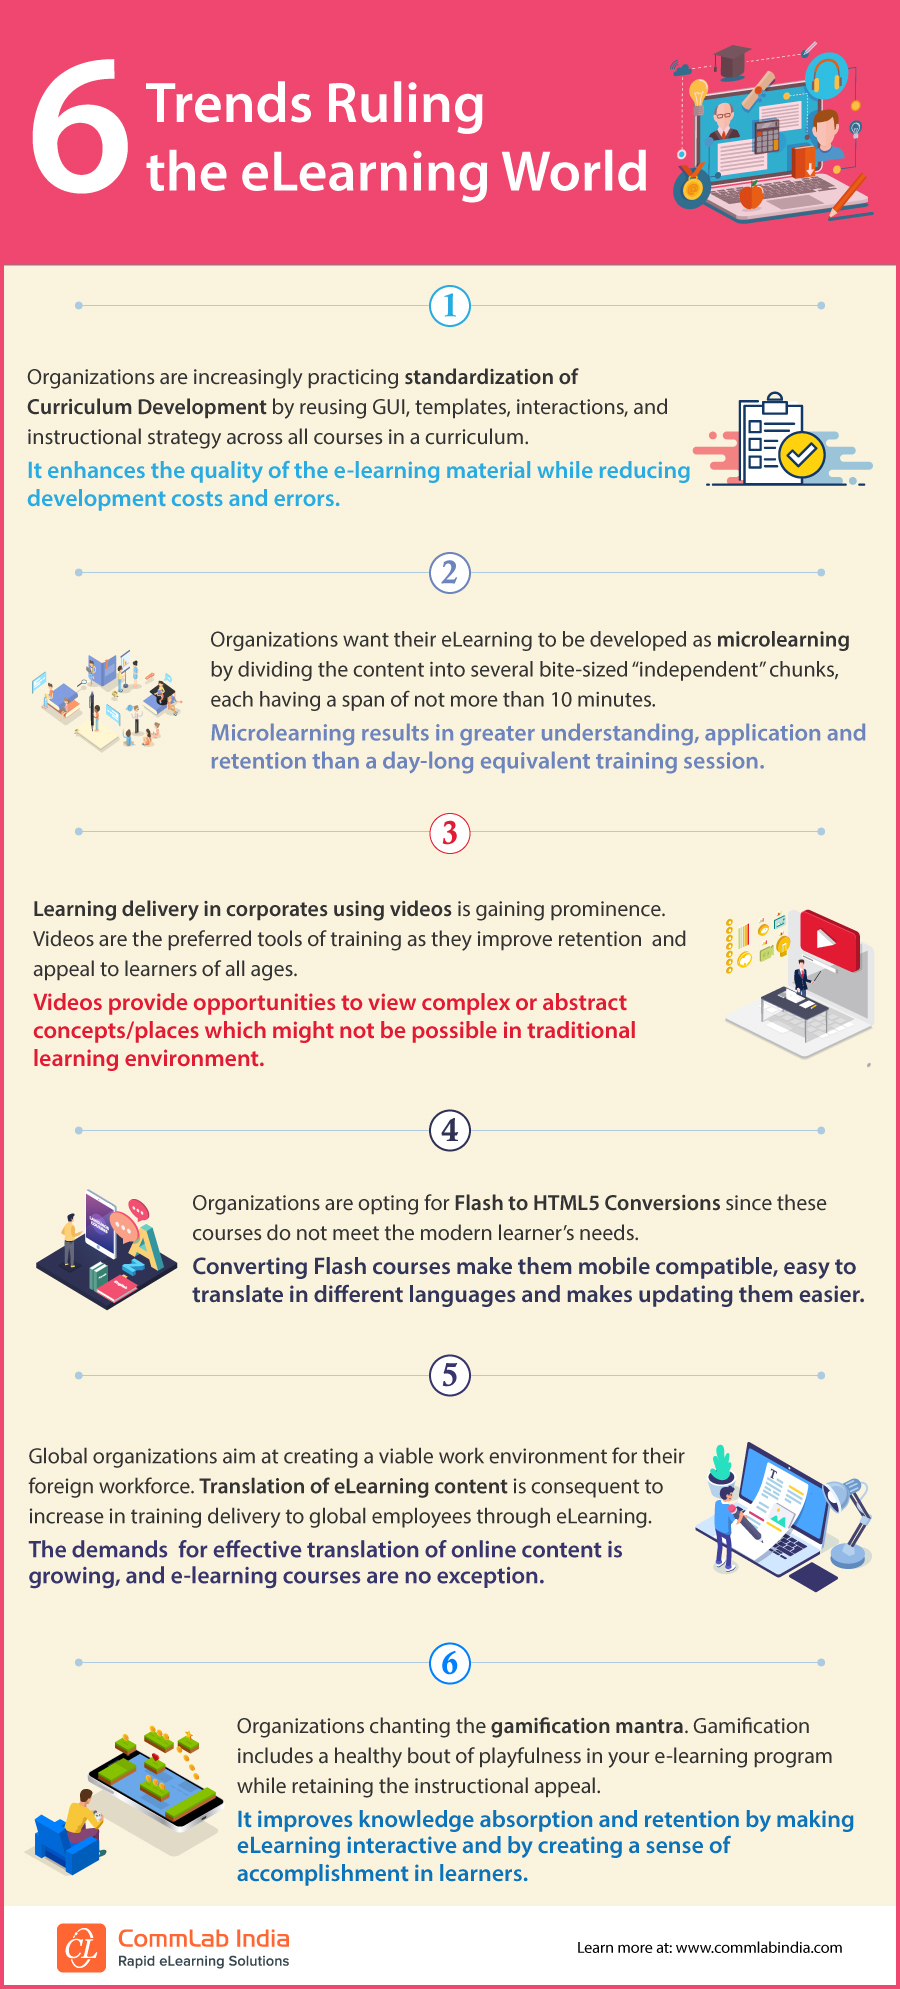 6 Trends Ruling the eLearning World [Infographic]